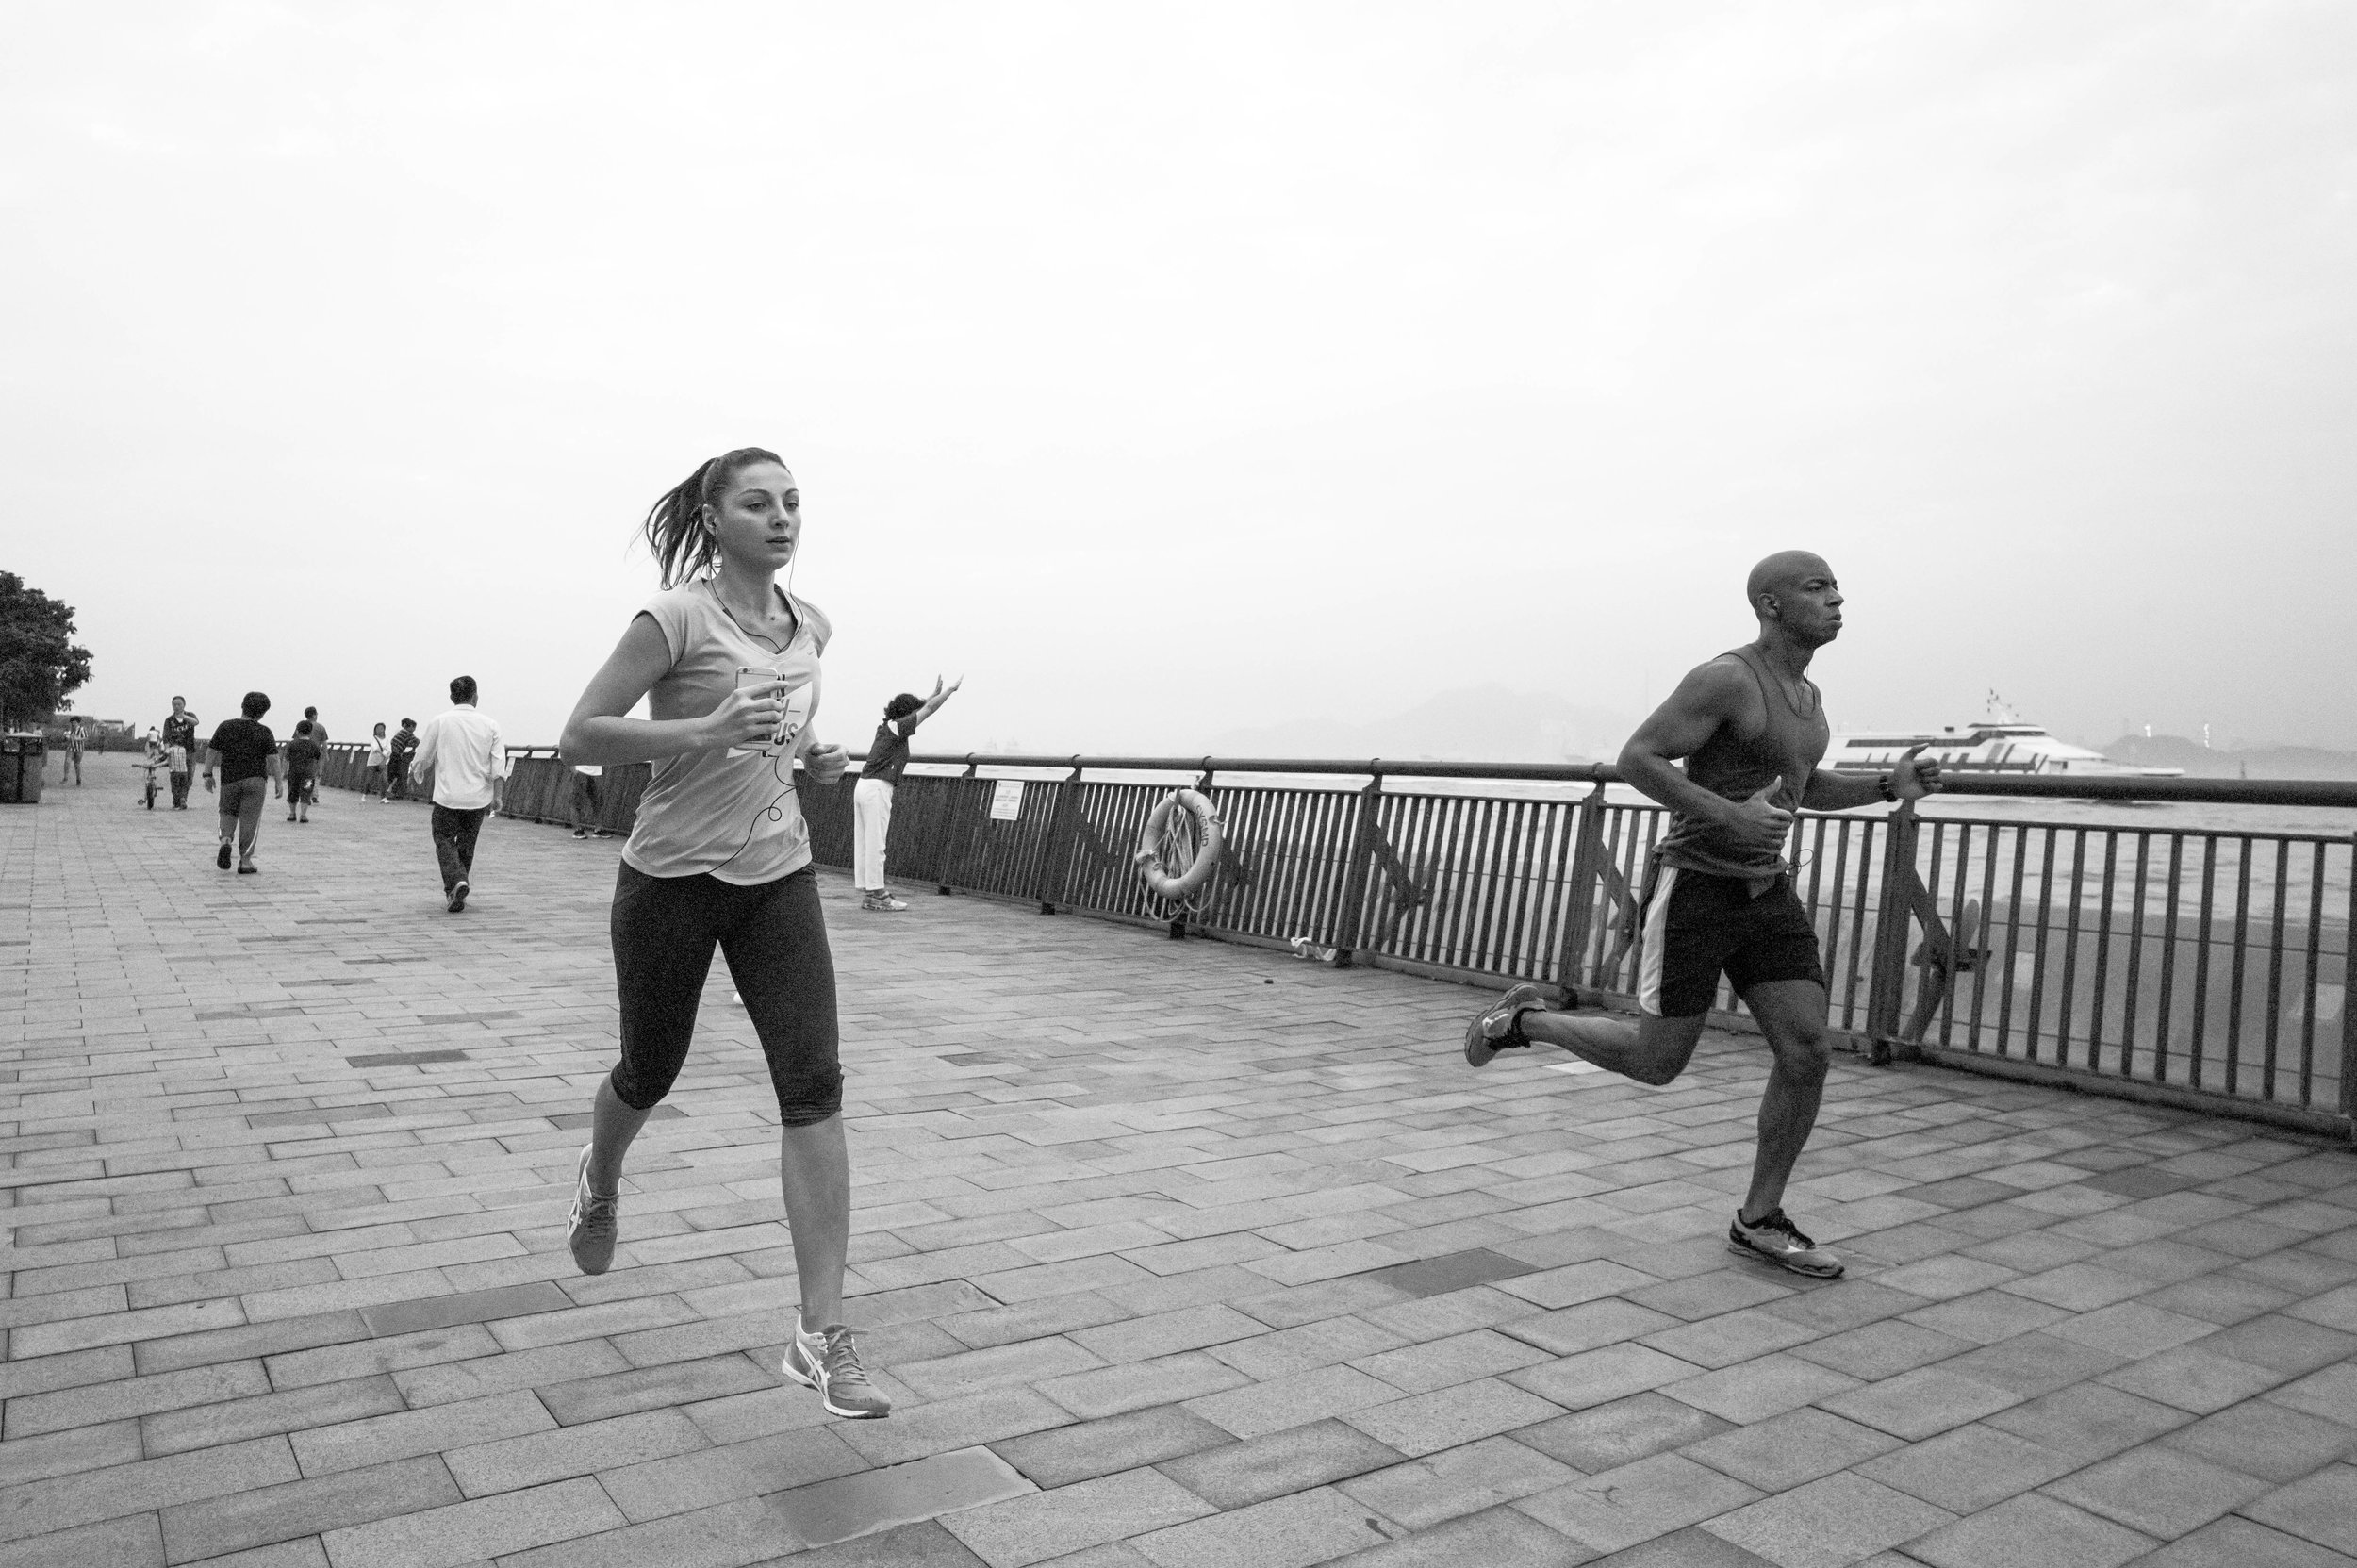 I really thought that this image was going to be liked. Shot at 21mm, and relatively close, at high shutter speed, I was able to freeze both runners in motion, without an overly distracting background. Still, this post only got 8 likes. I have since deleted it.